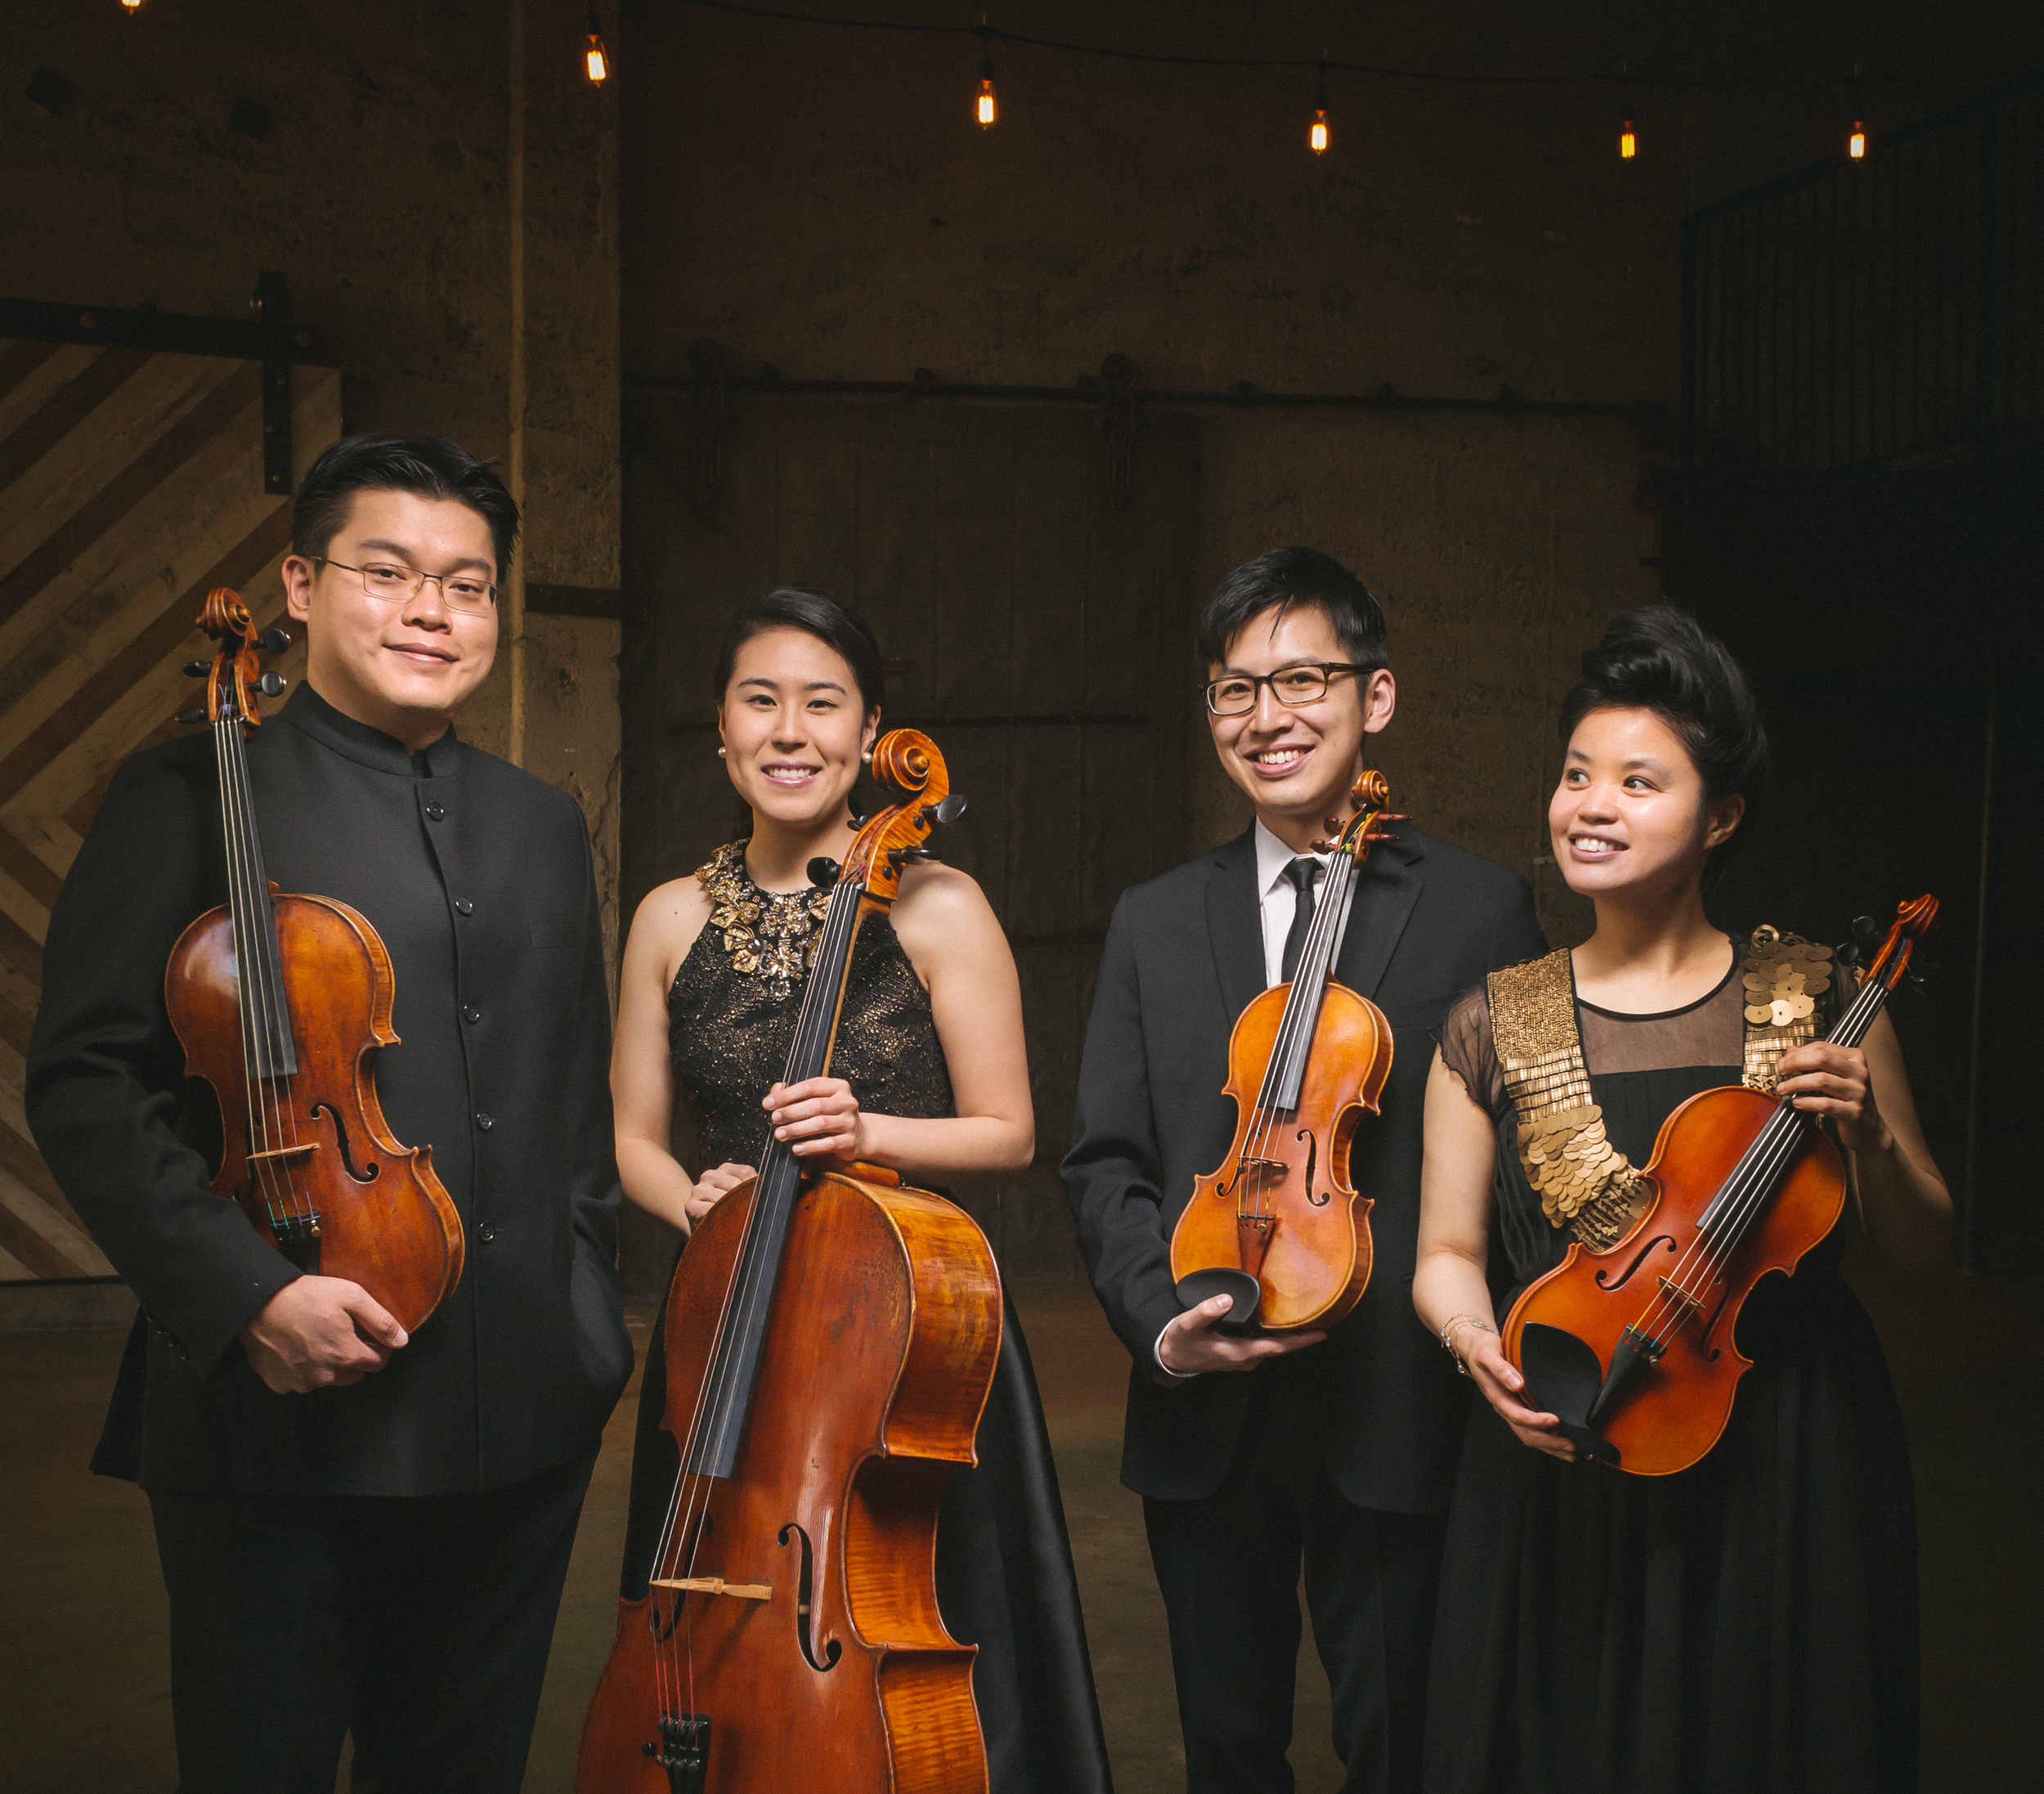 Formosa Quartet (from left to right):  Che-Yen Chen, Deborah Pae, Wayne Lee, Jasmine Lin